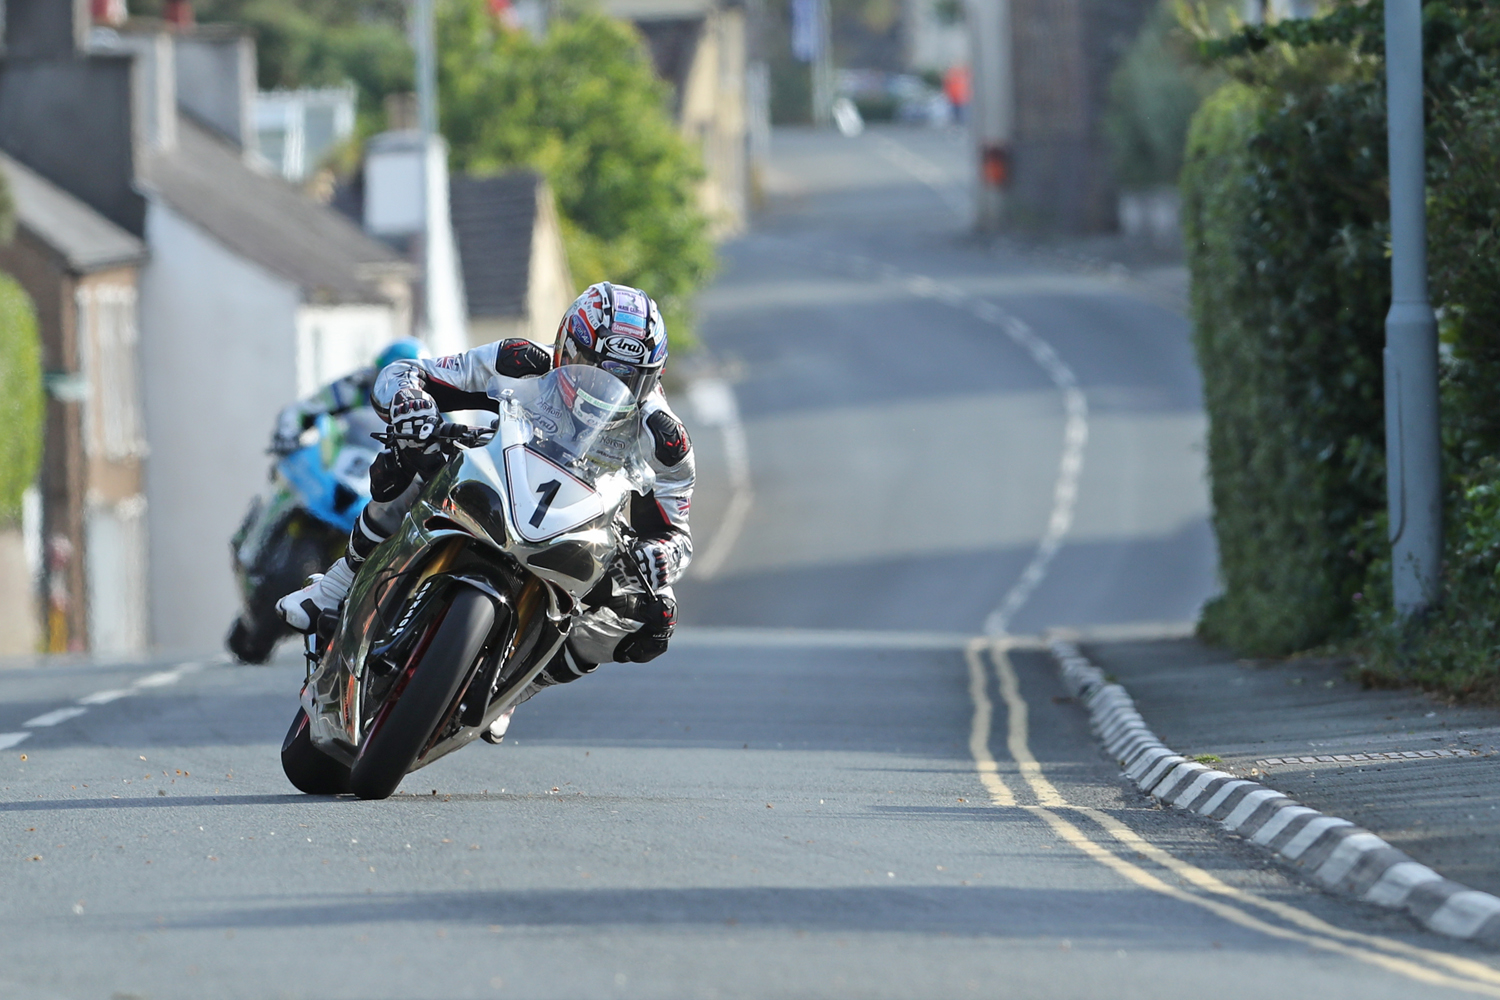 31/05/2017: David Johnson (Norton/Norton Motorcycles) through the village of Kirk Michael during qualifying for the Isle of Man TT. PICTURE BY DAVE KNEEN/PACEMAKER PRESS.